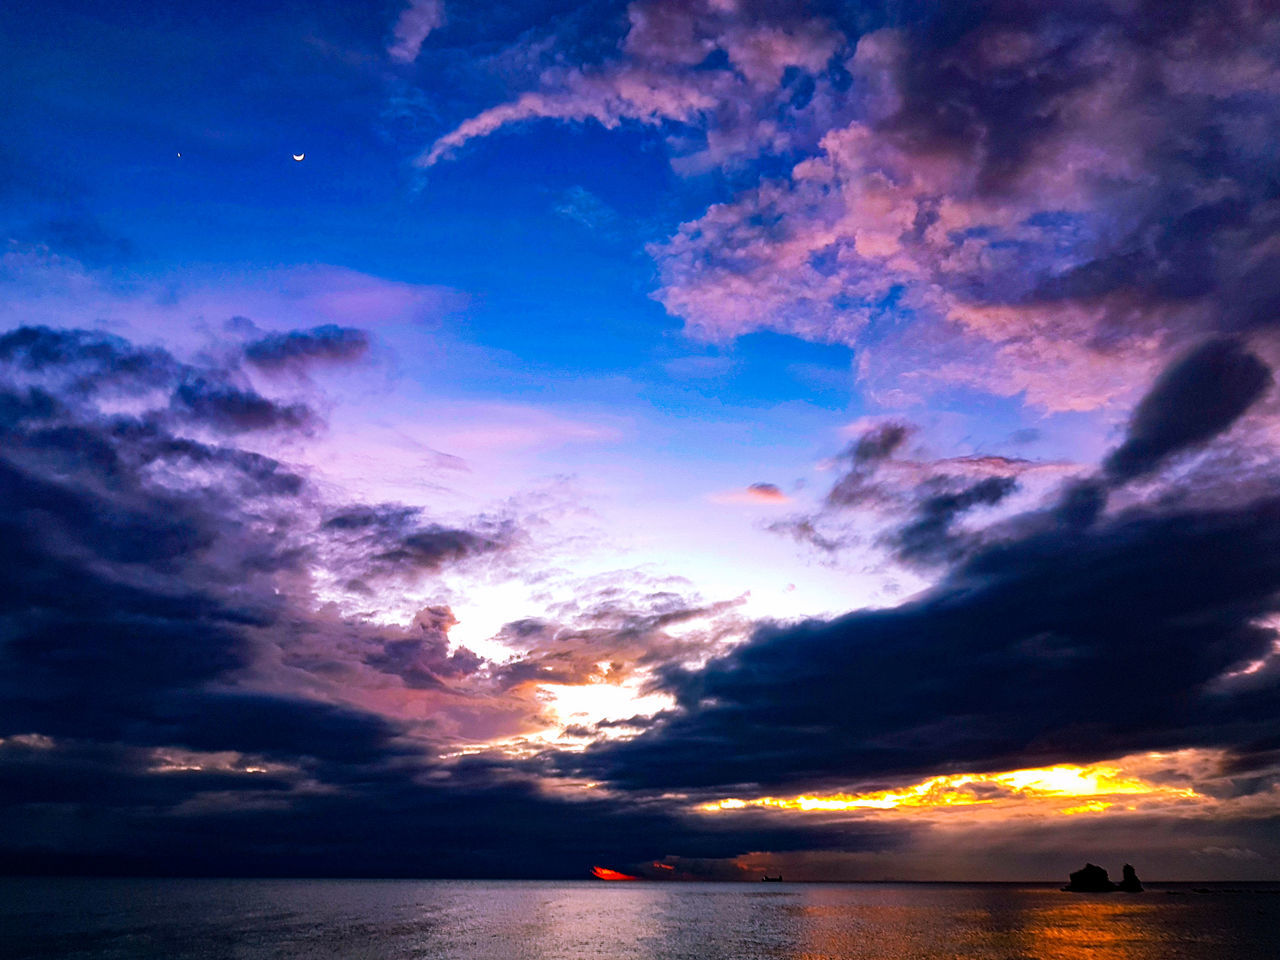 Crescent. Sky Sunset Reflection Cloud - Sky Beauty In Nature Sea Dramatic Sky Nature Outdoors Star - Space Water Scenics Night Life Travel Travel Photography Nature Clouds And Sky Dramatic Sky S7edgephotography Mobilephotography HDR TravelPhilippines Horizon Over Water EyeemPhilippines